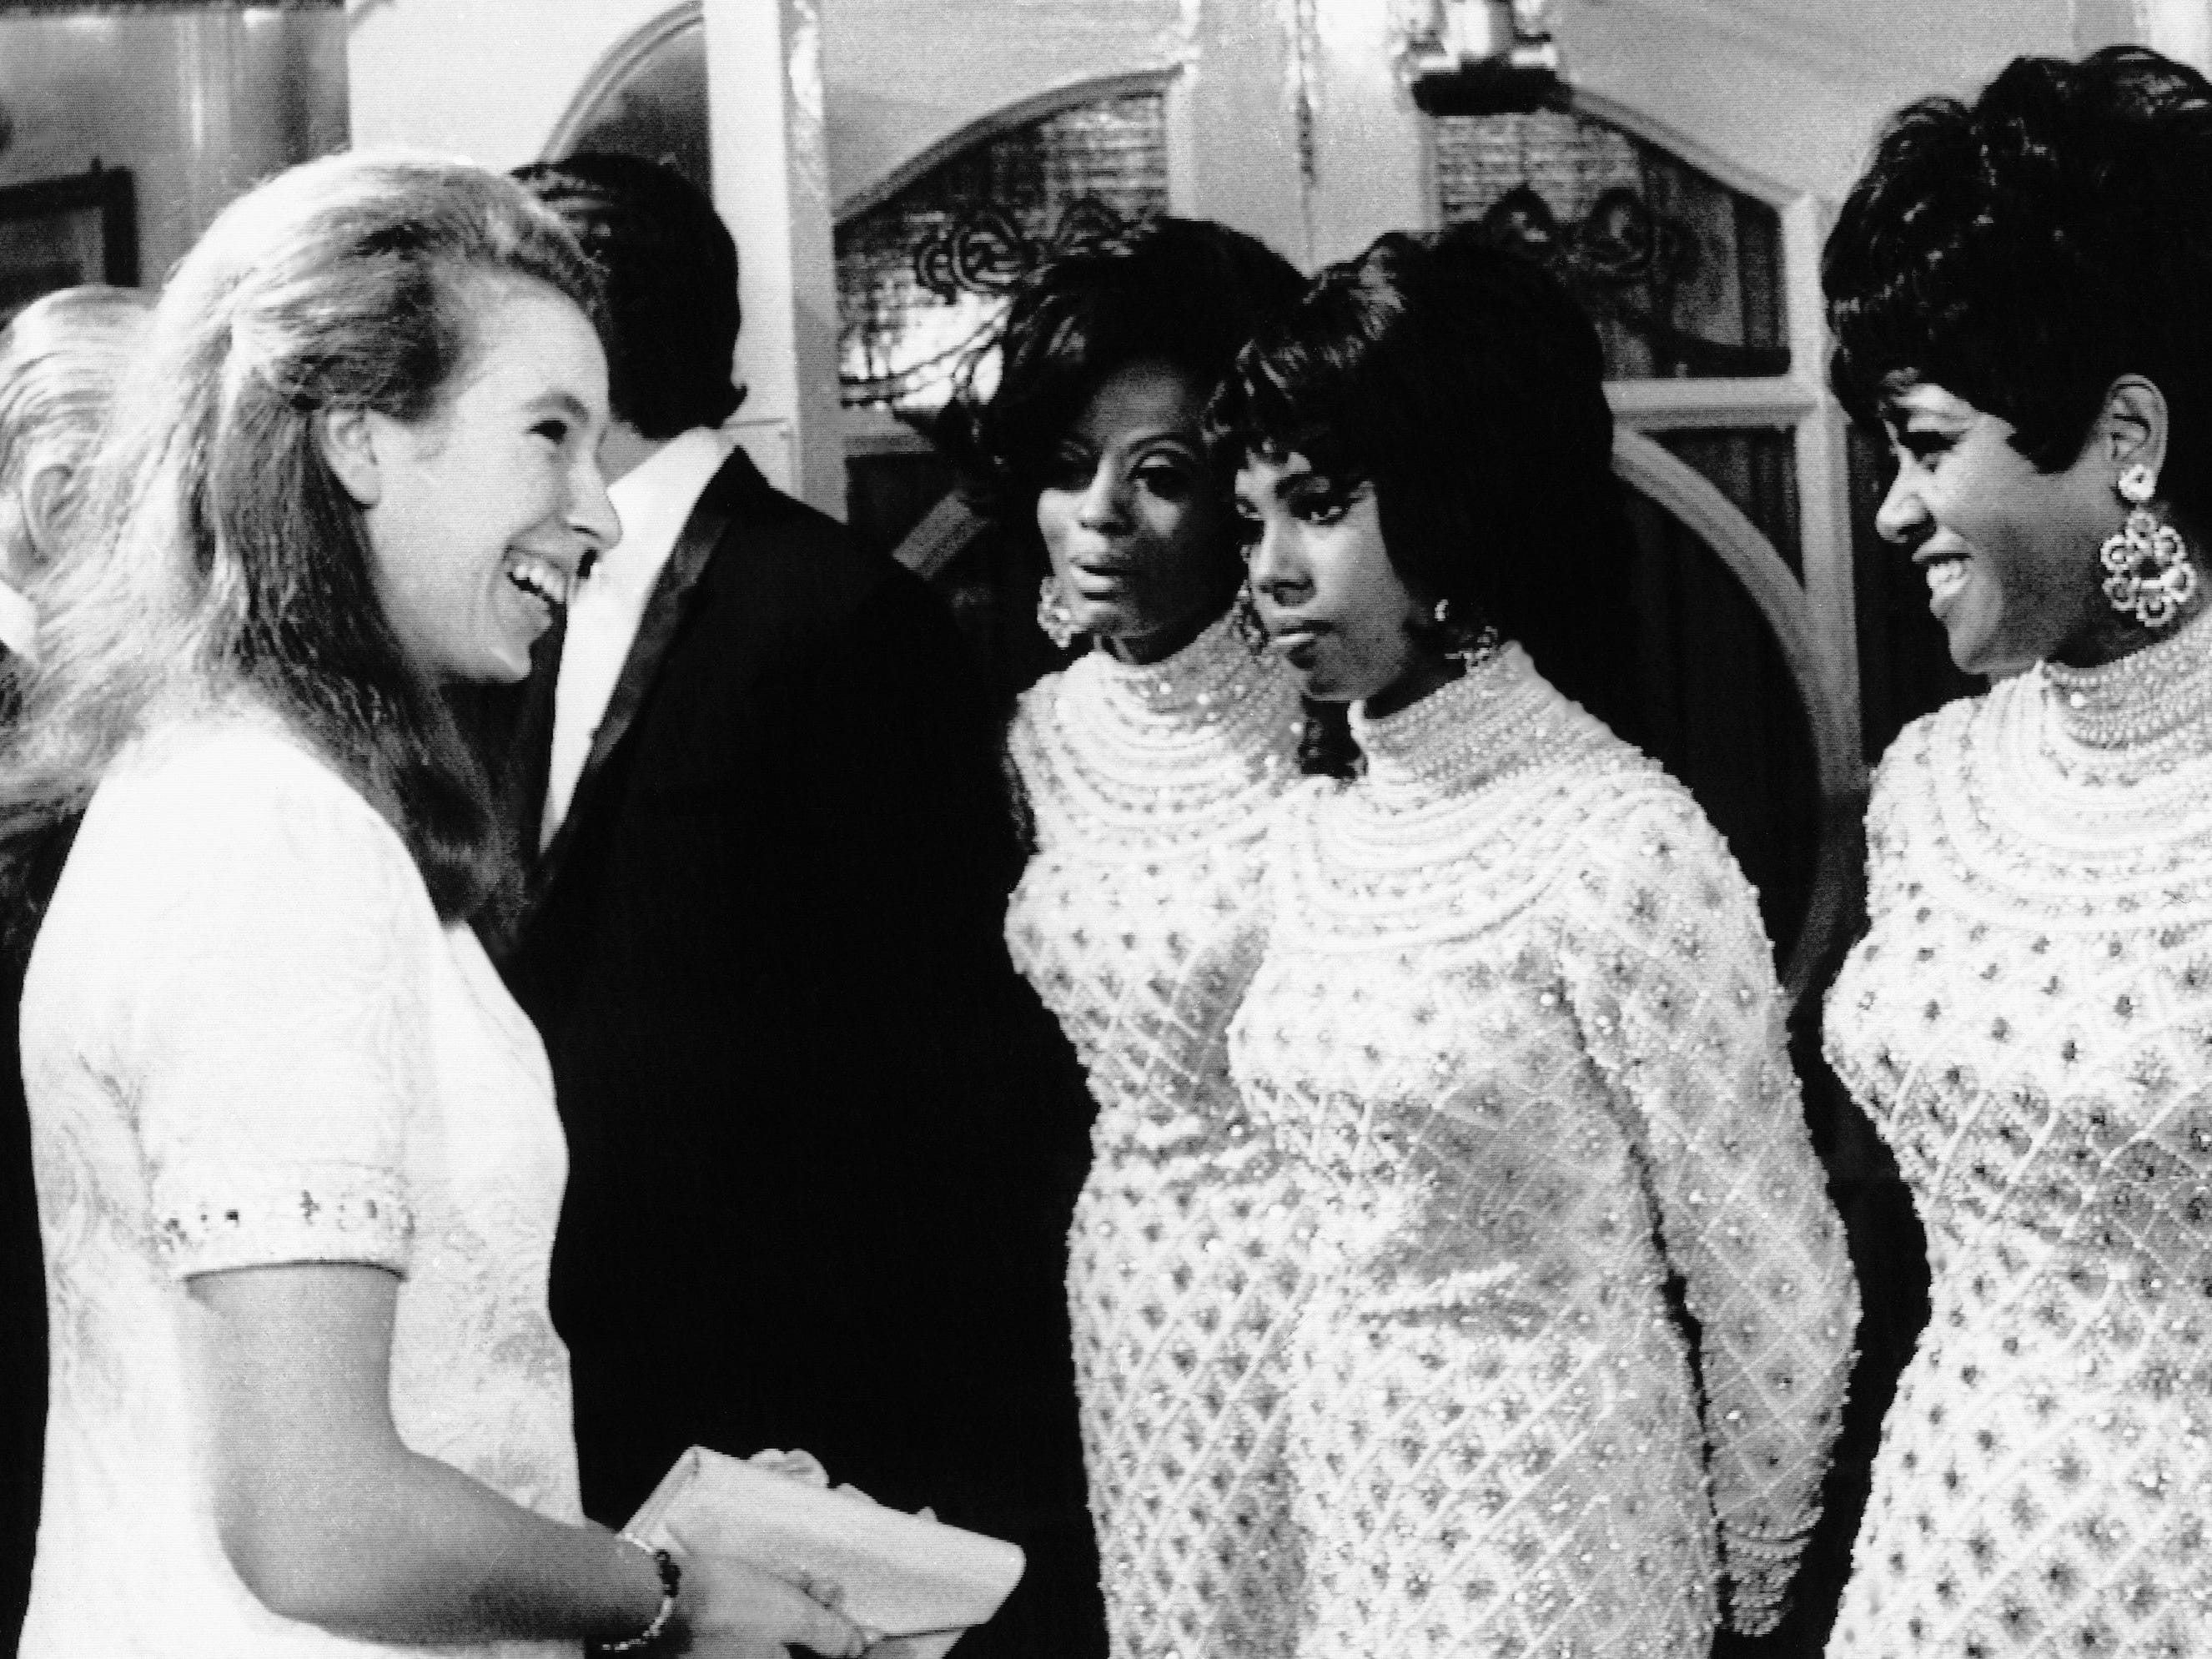 Princess Anne of Great Britain talks with the Supremes after their royal variety performance at the London Palladium on Nov. 18, 1968. During the performance, Ross made an impassioned plea for racial tolerance, which received a mixed reception.